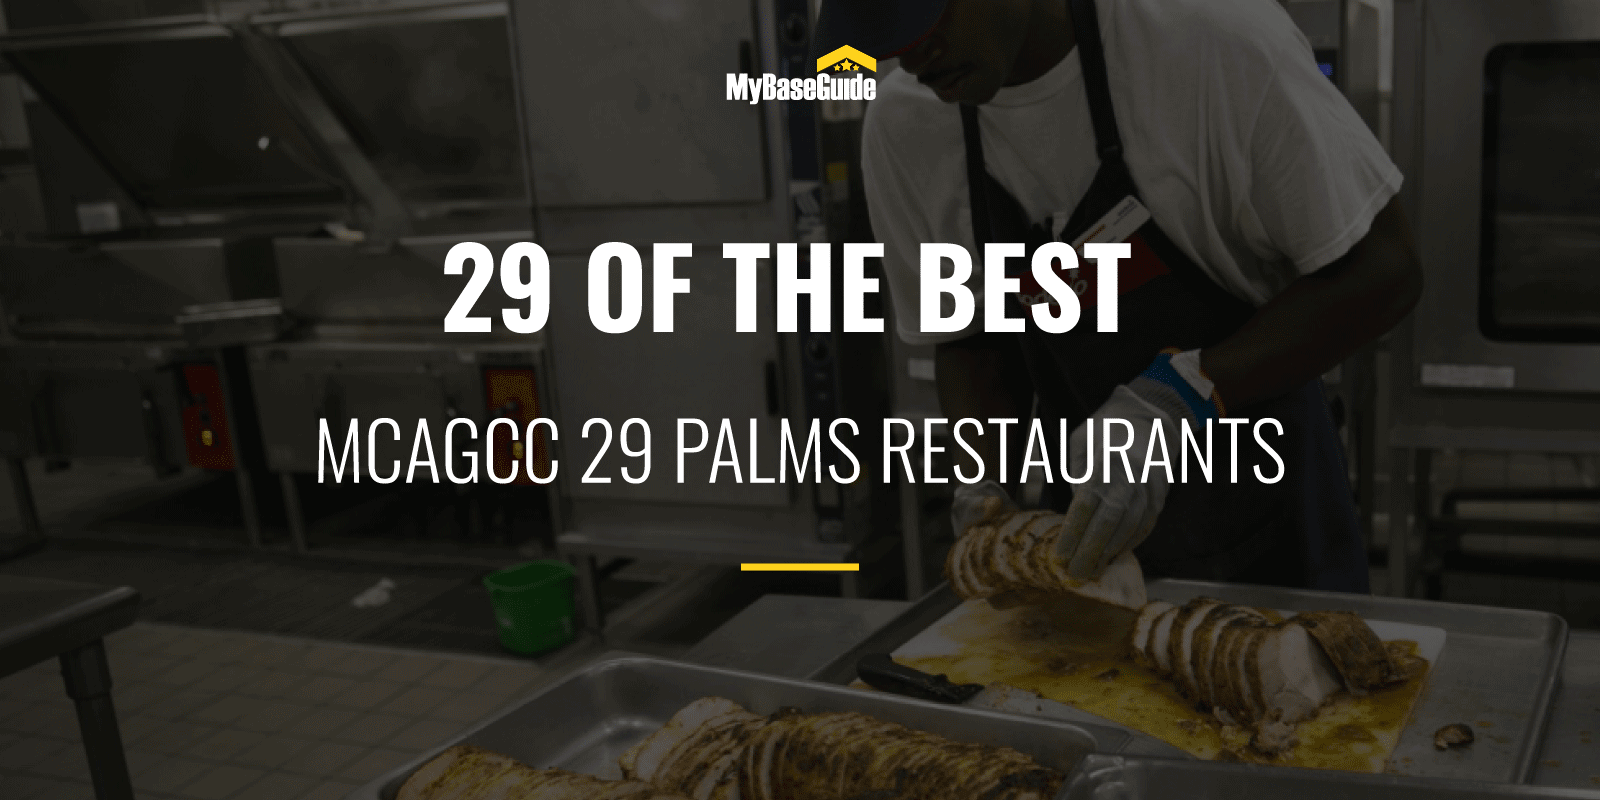 29 of the Best MCAGCC 29 Palms Restaurants